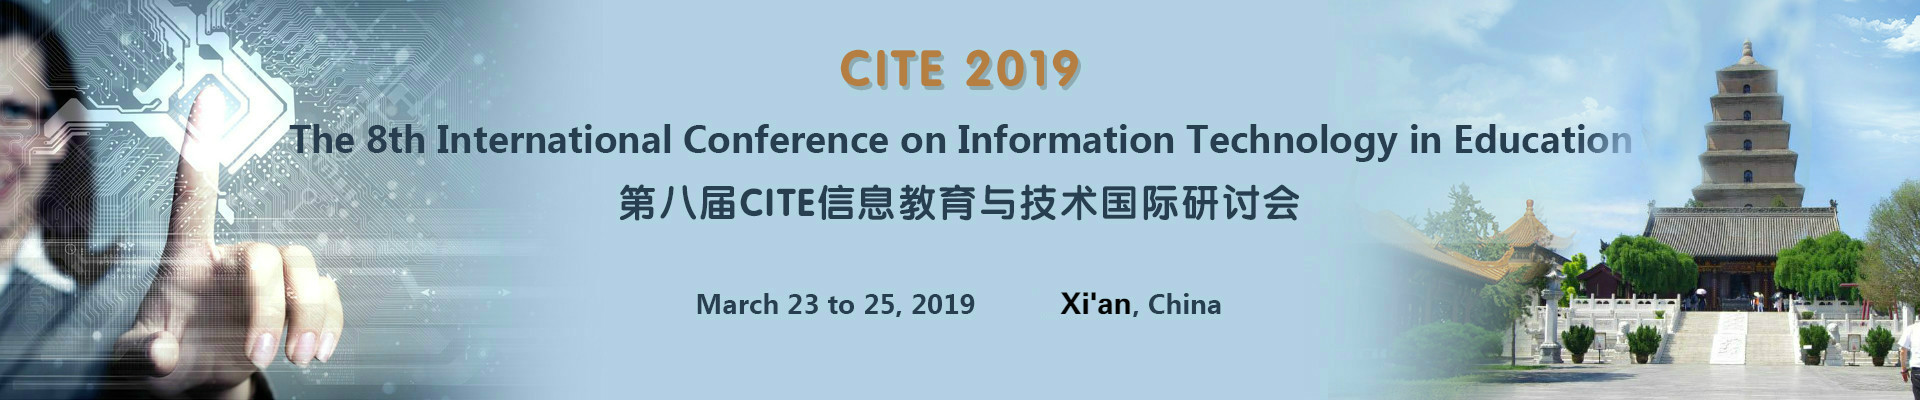 The 8th International Conference on Information Technology in Education (CITE 2019), Xi'an, Shanxi, China